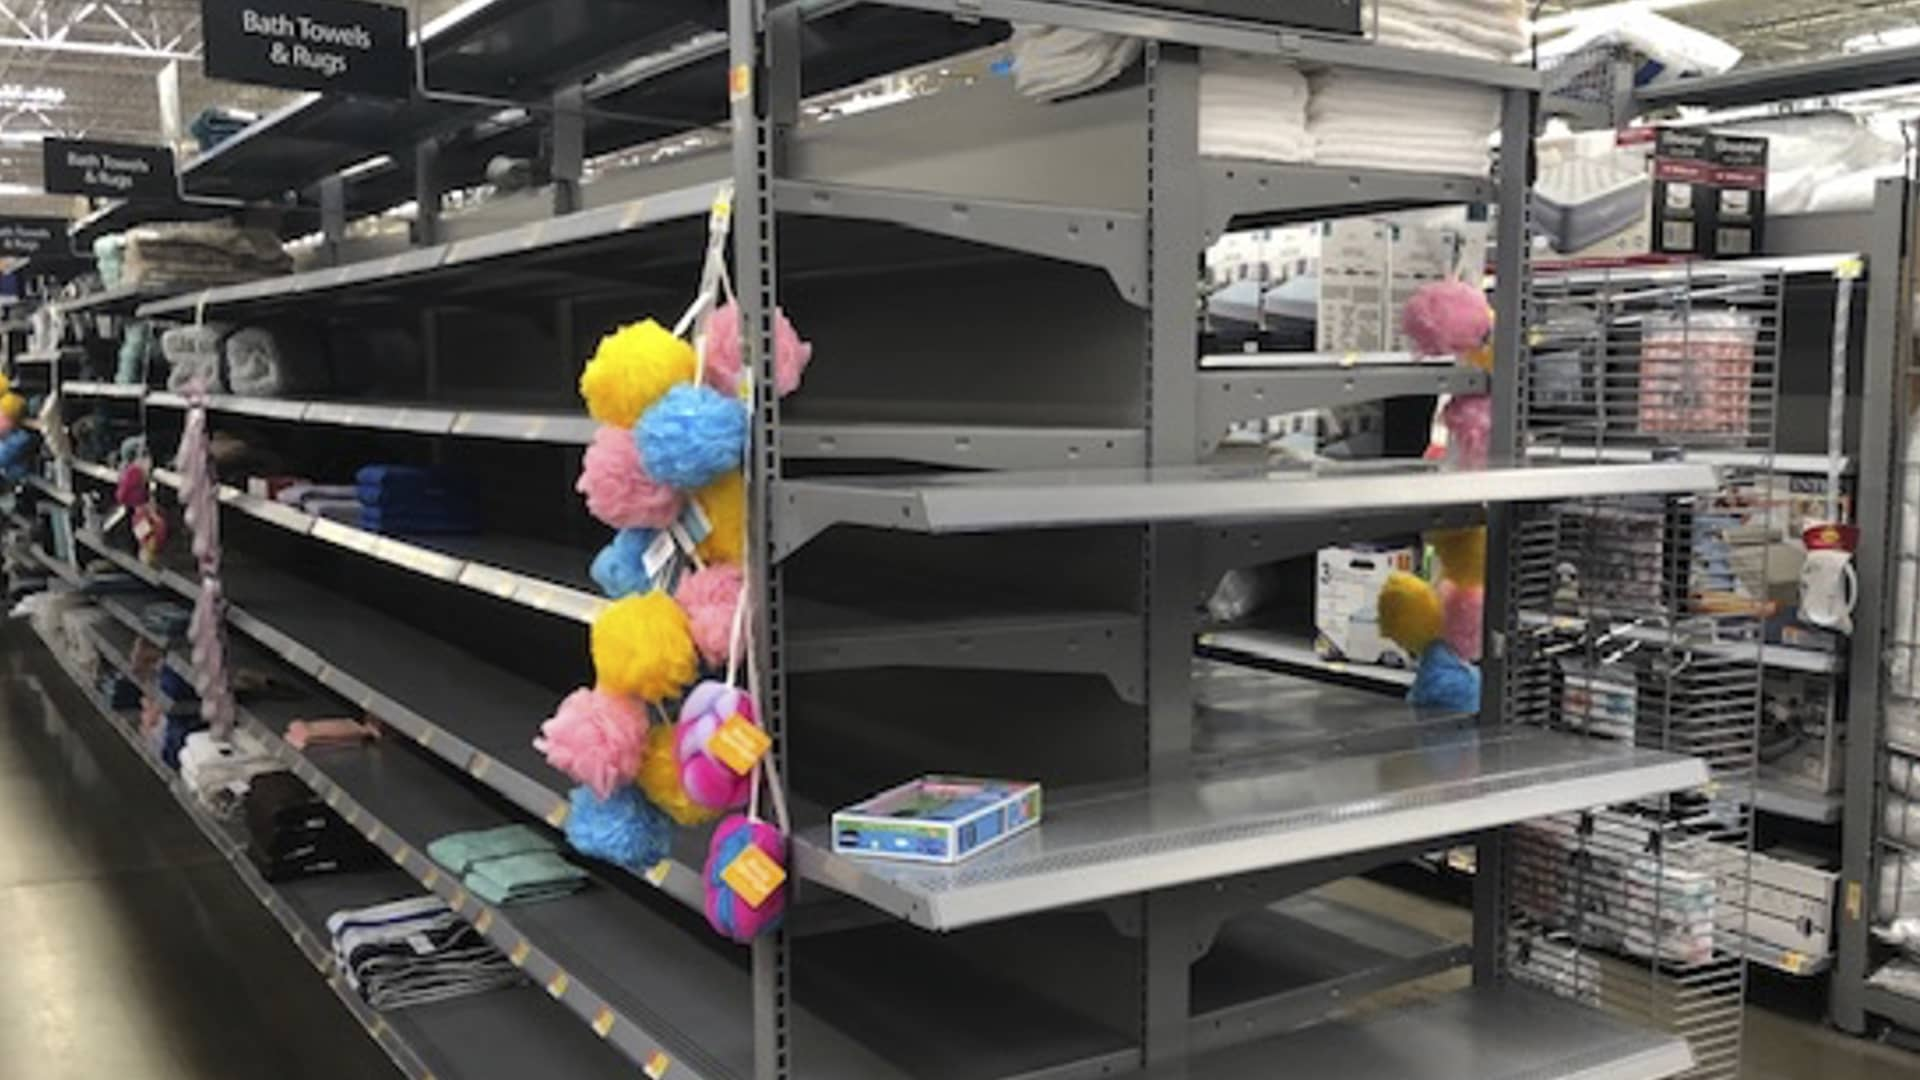 Walmart has had out-of- stocks and empty shelves at some stores in recent months. CEO Doug McMillon attributed it to high demand and supply chain challenges during the pandemic.